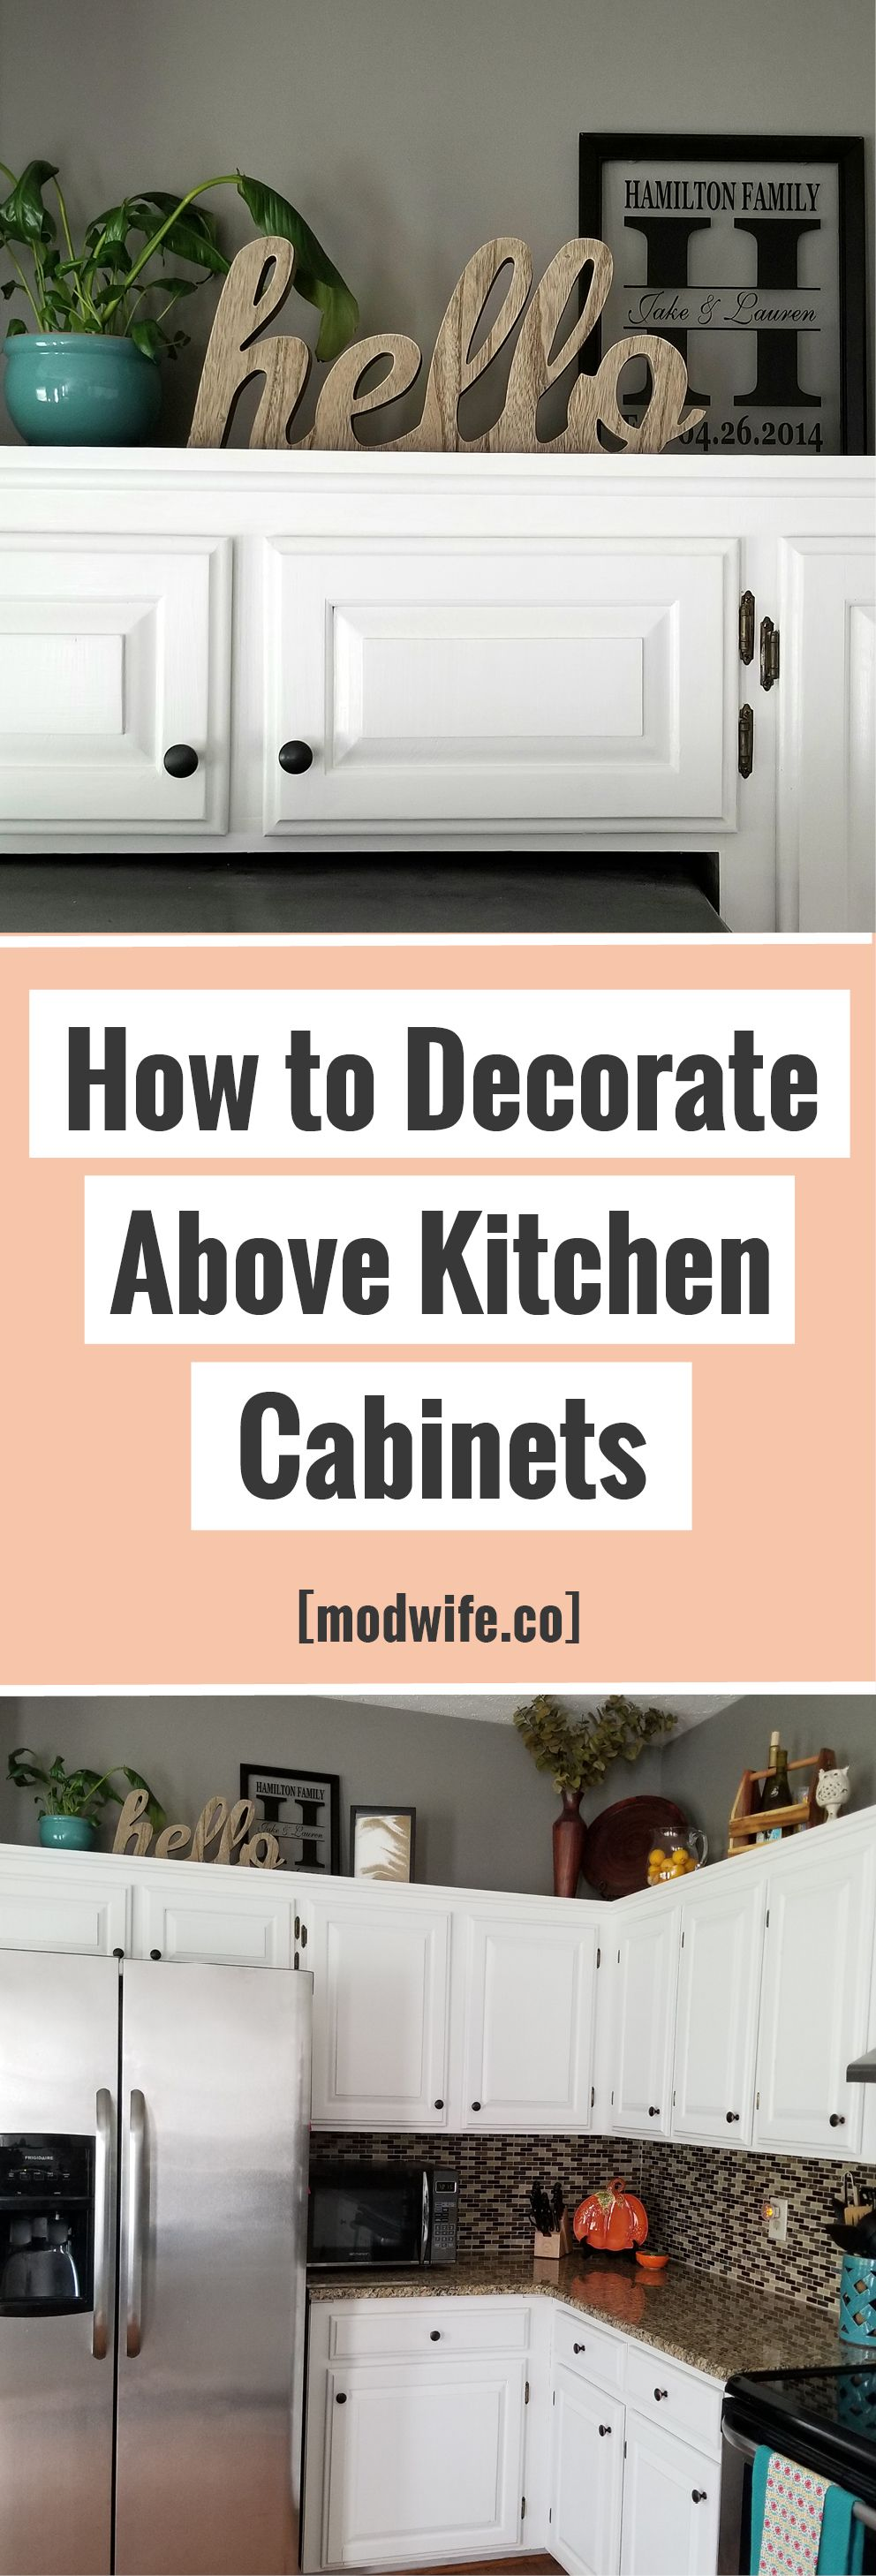 How To Decorate Above Kitchen Cabinets Above Kitchen Cabinets Decorating Above Kitchen Cabinets Kitchen Cabinets Decor